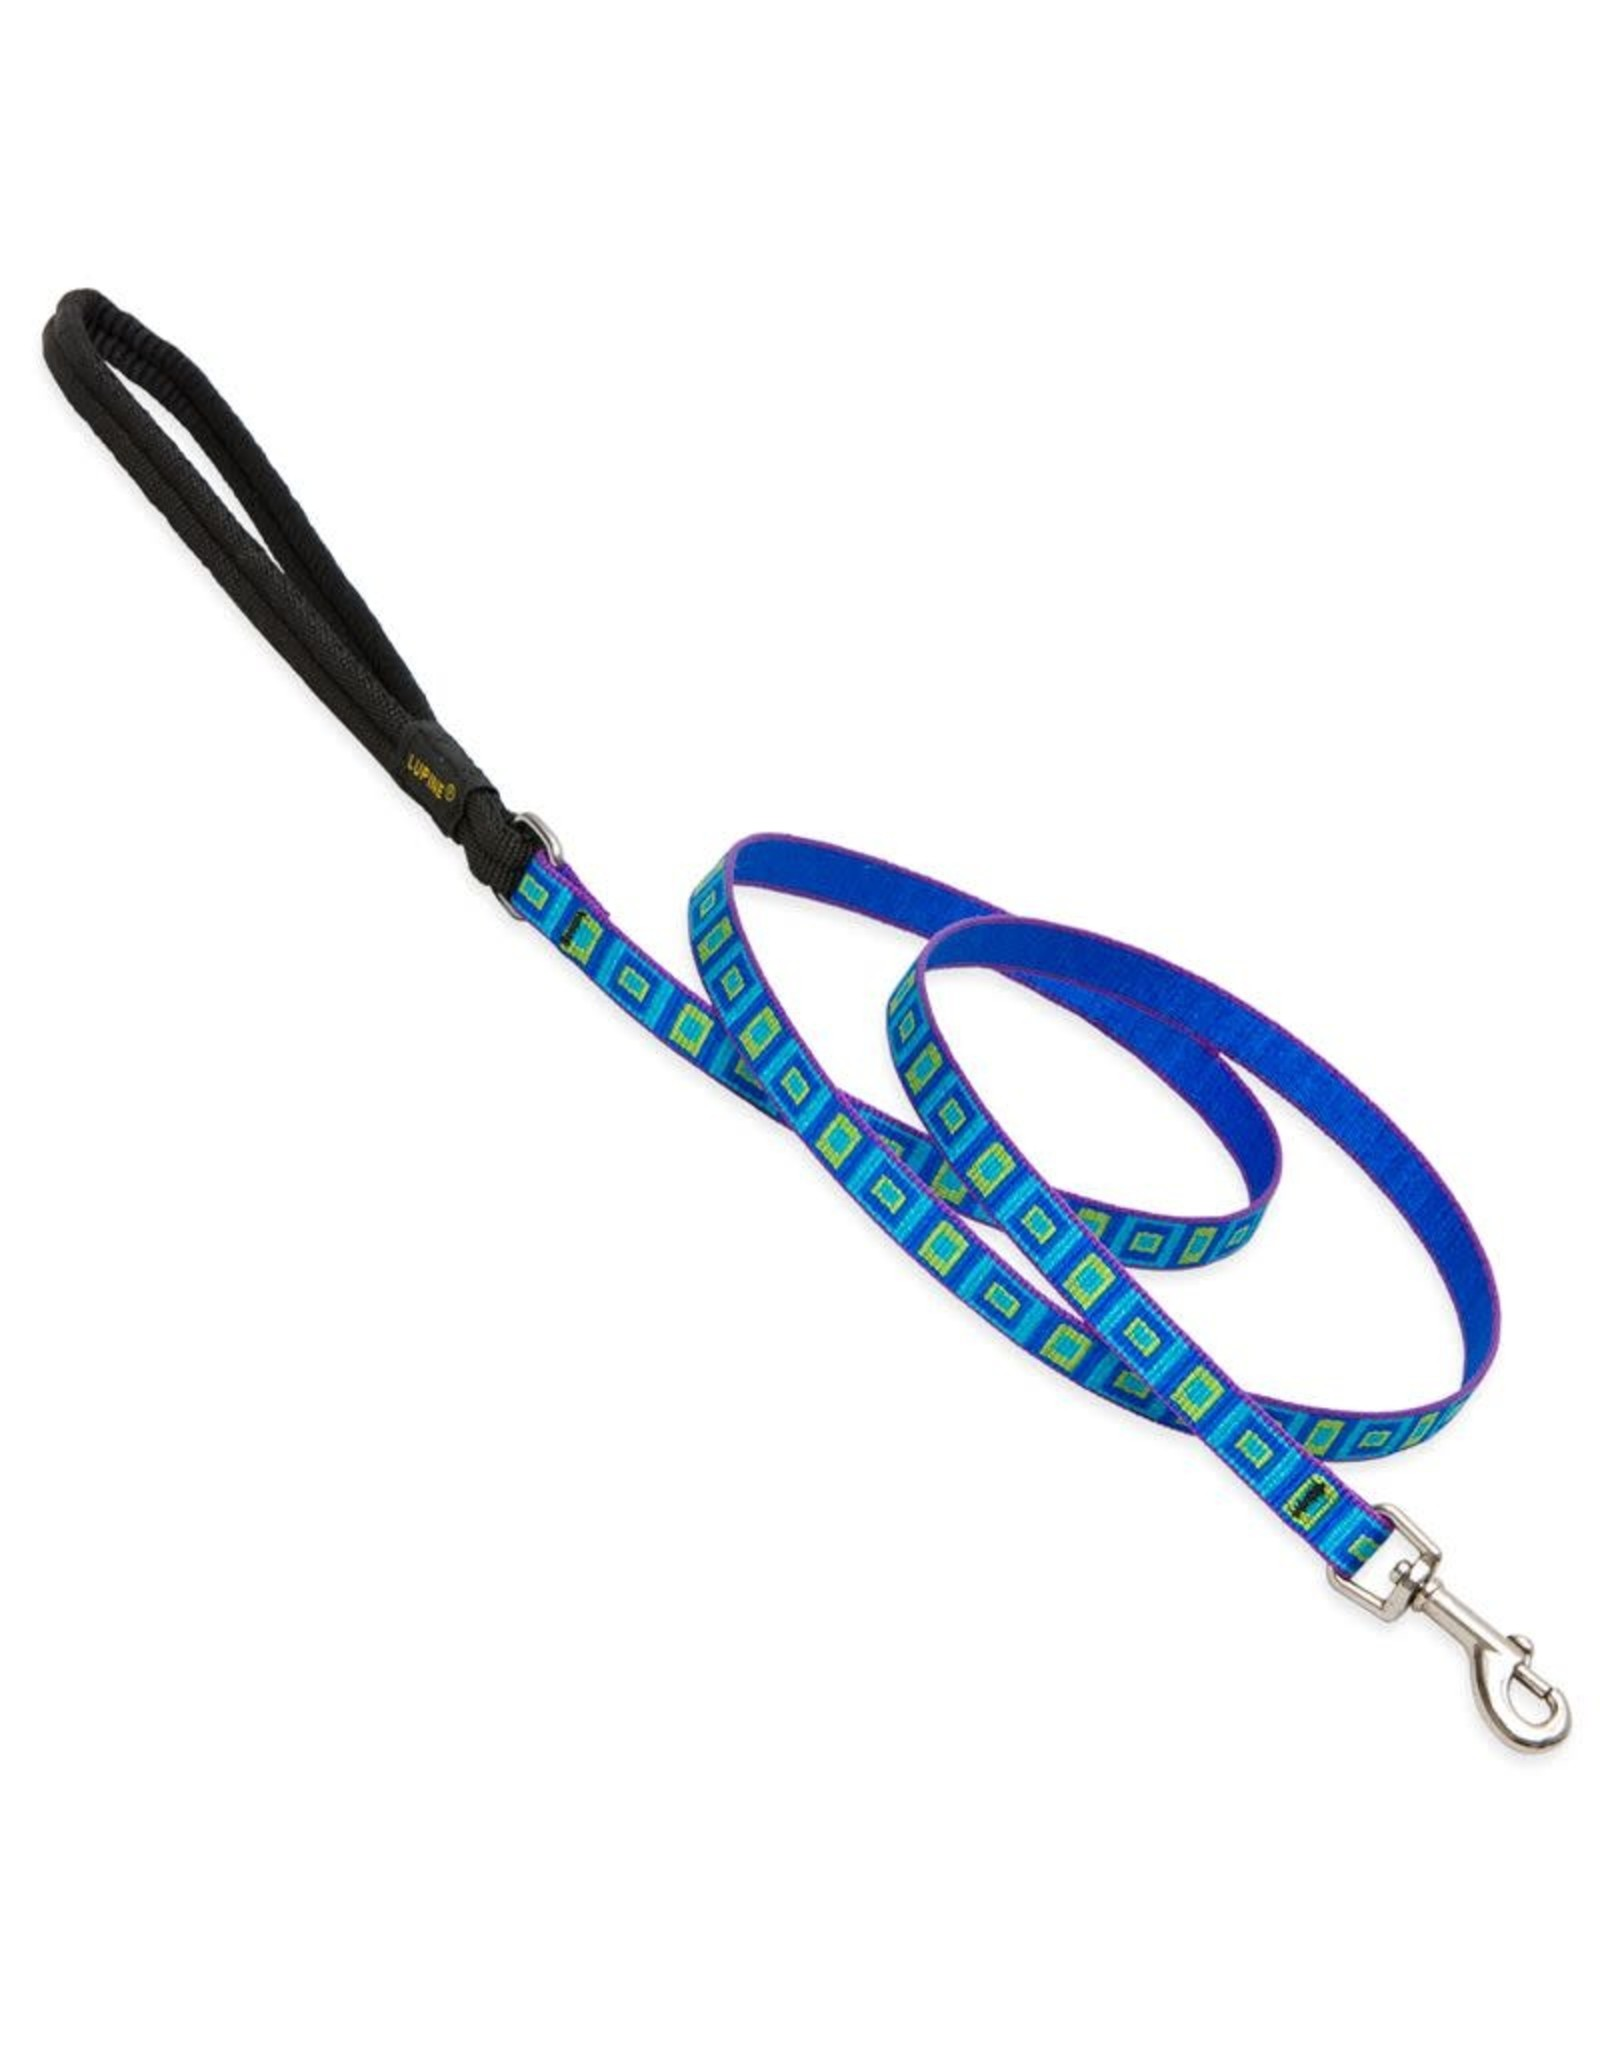 Lupine Lupine Sea Glass Leash: 3/4 in wide, 6 ft